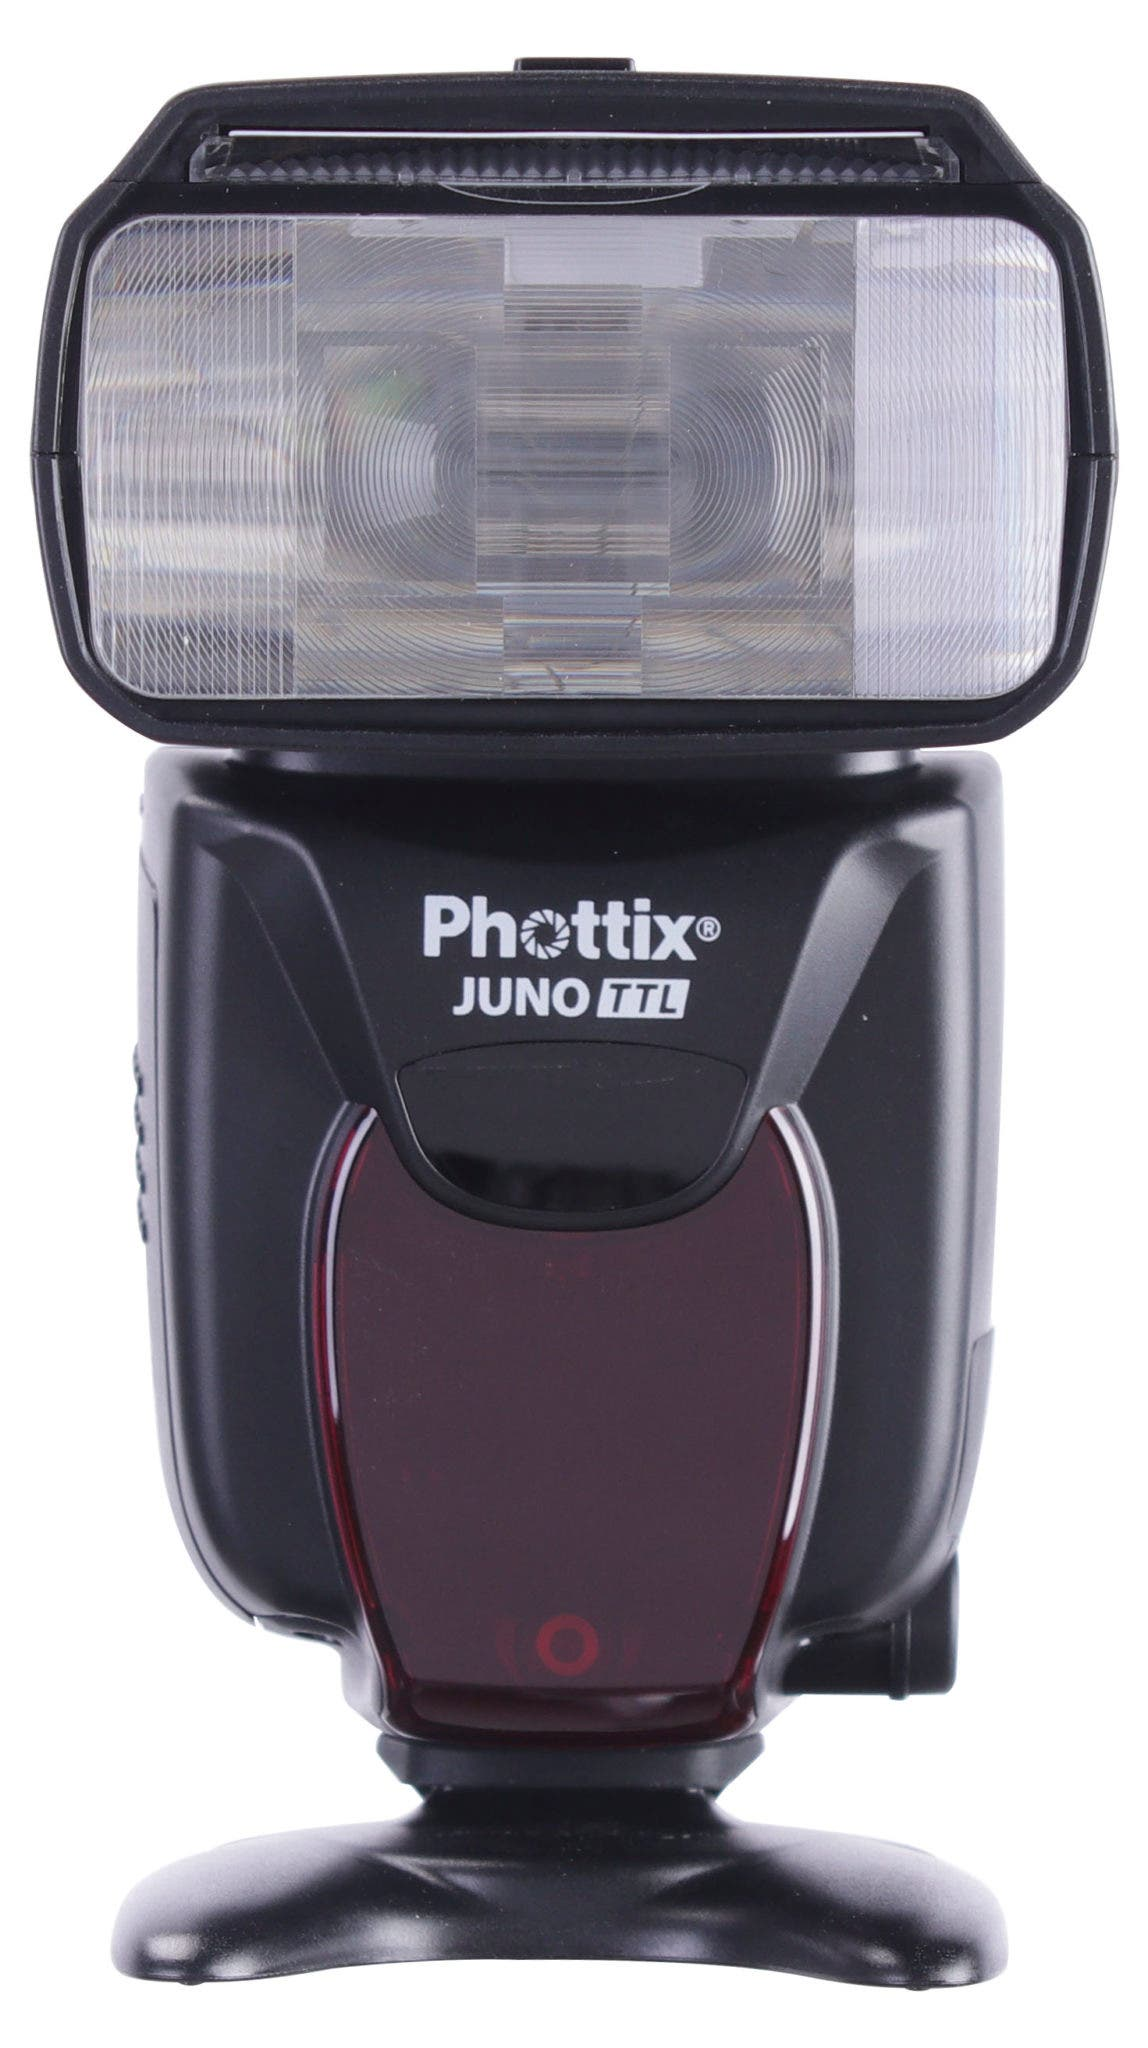 The Phottix Juno TTL Flash Incorporates the New Odin Z Operating System